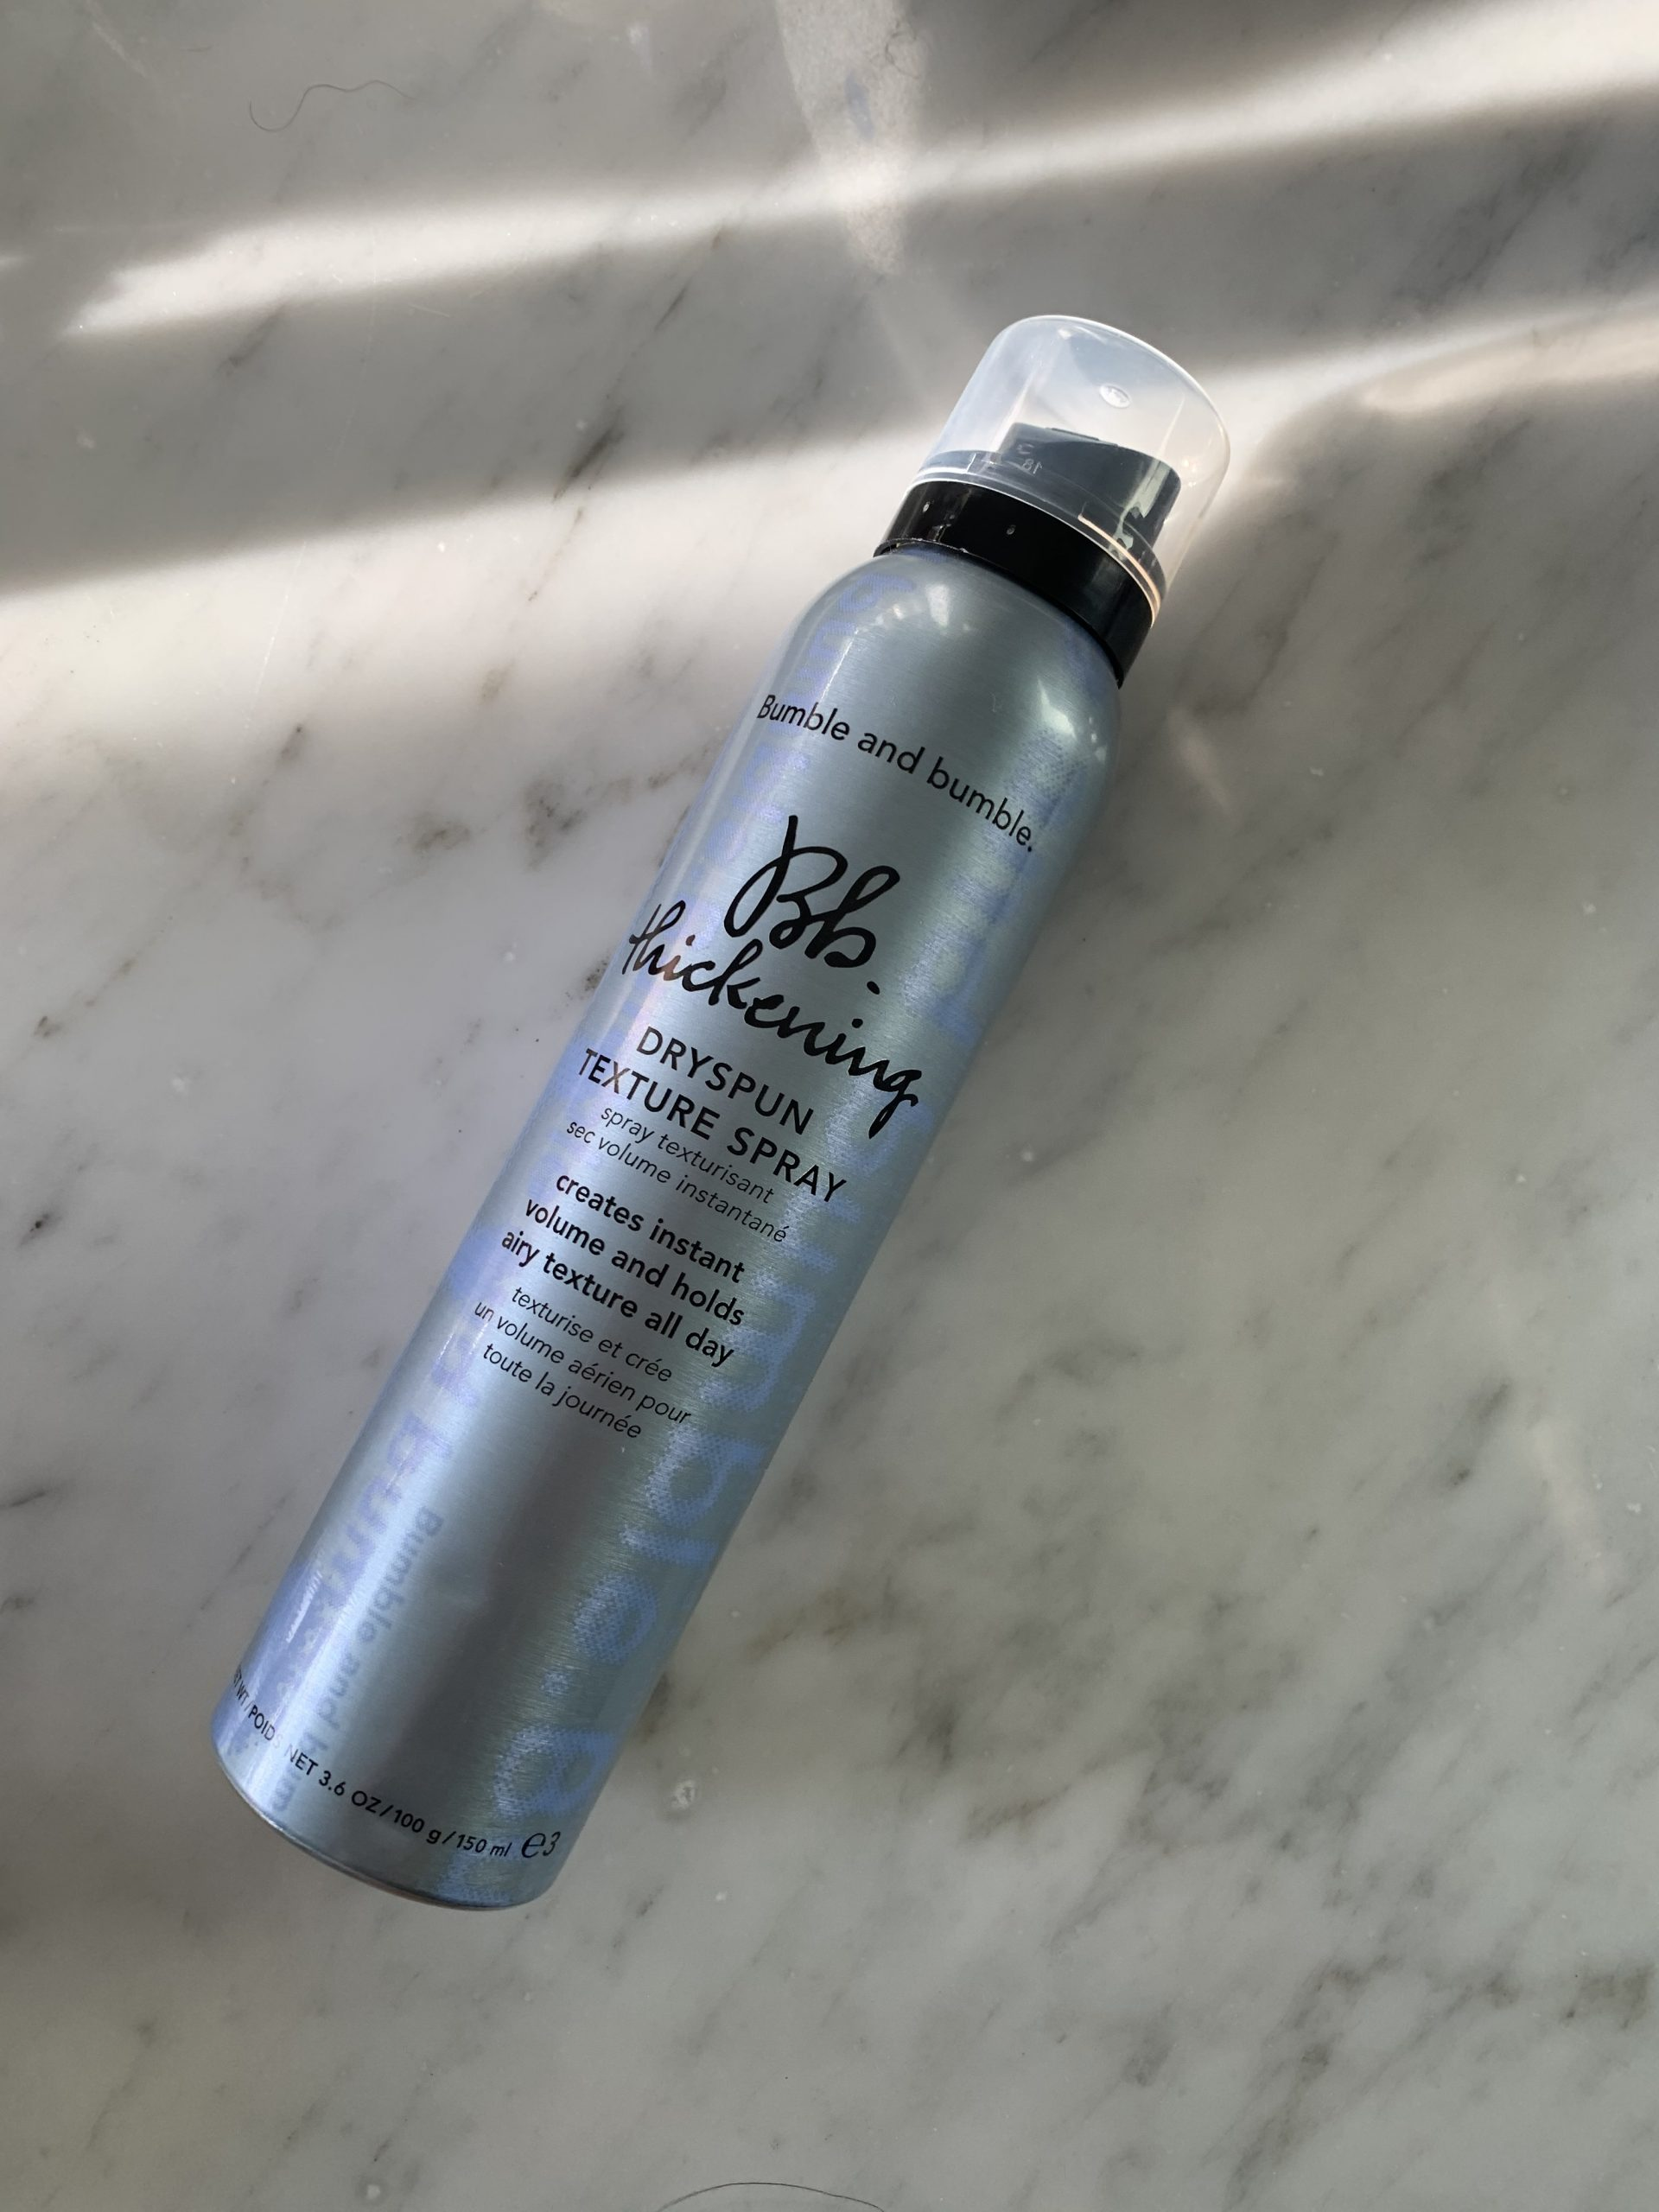 Bumble And Bumble Thickening Dryspun Texture Spray Canadian Beauty